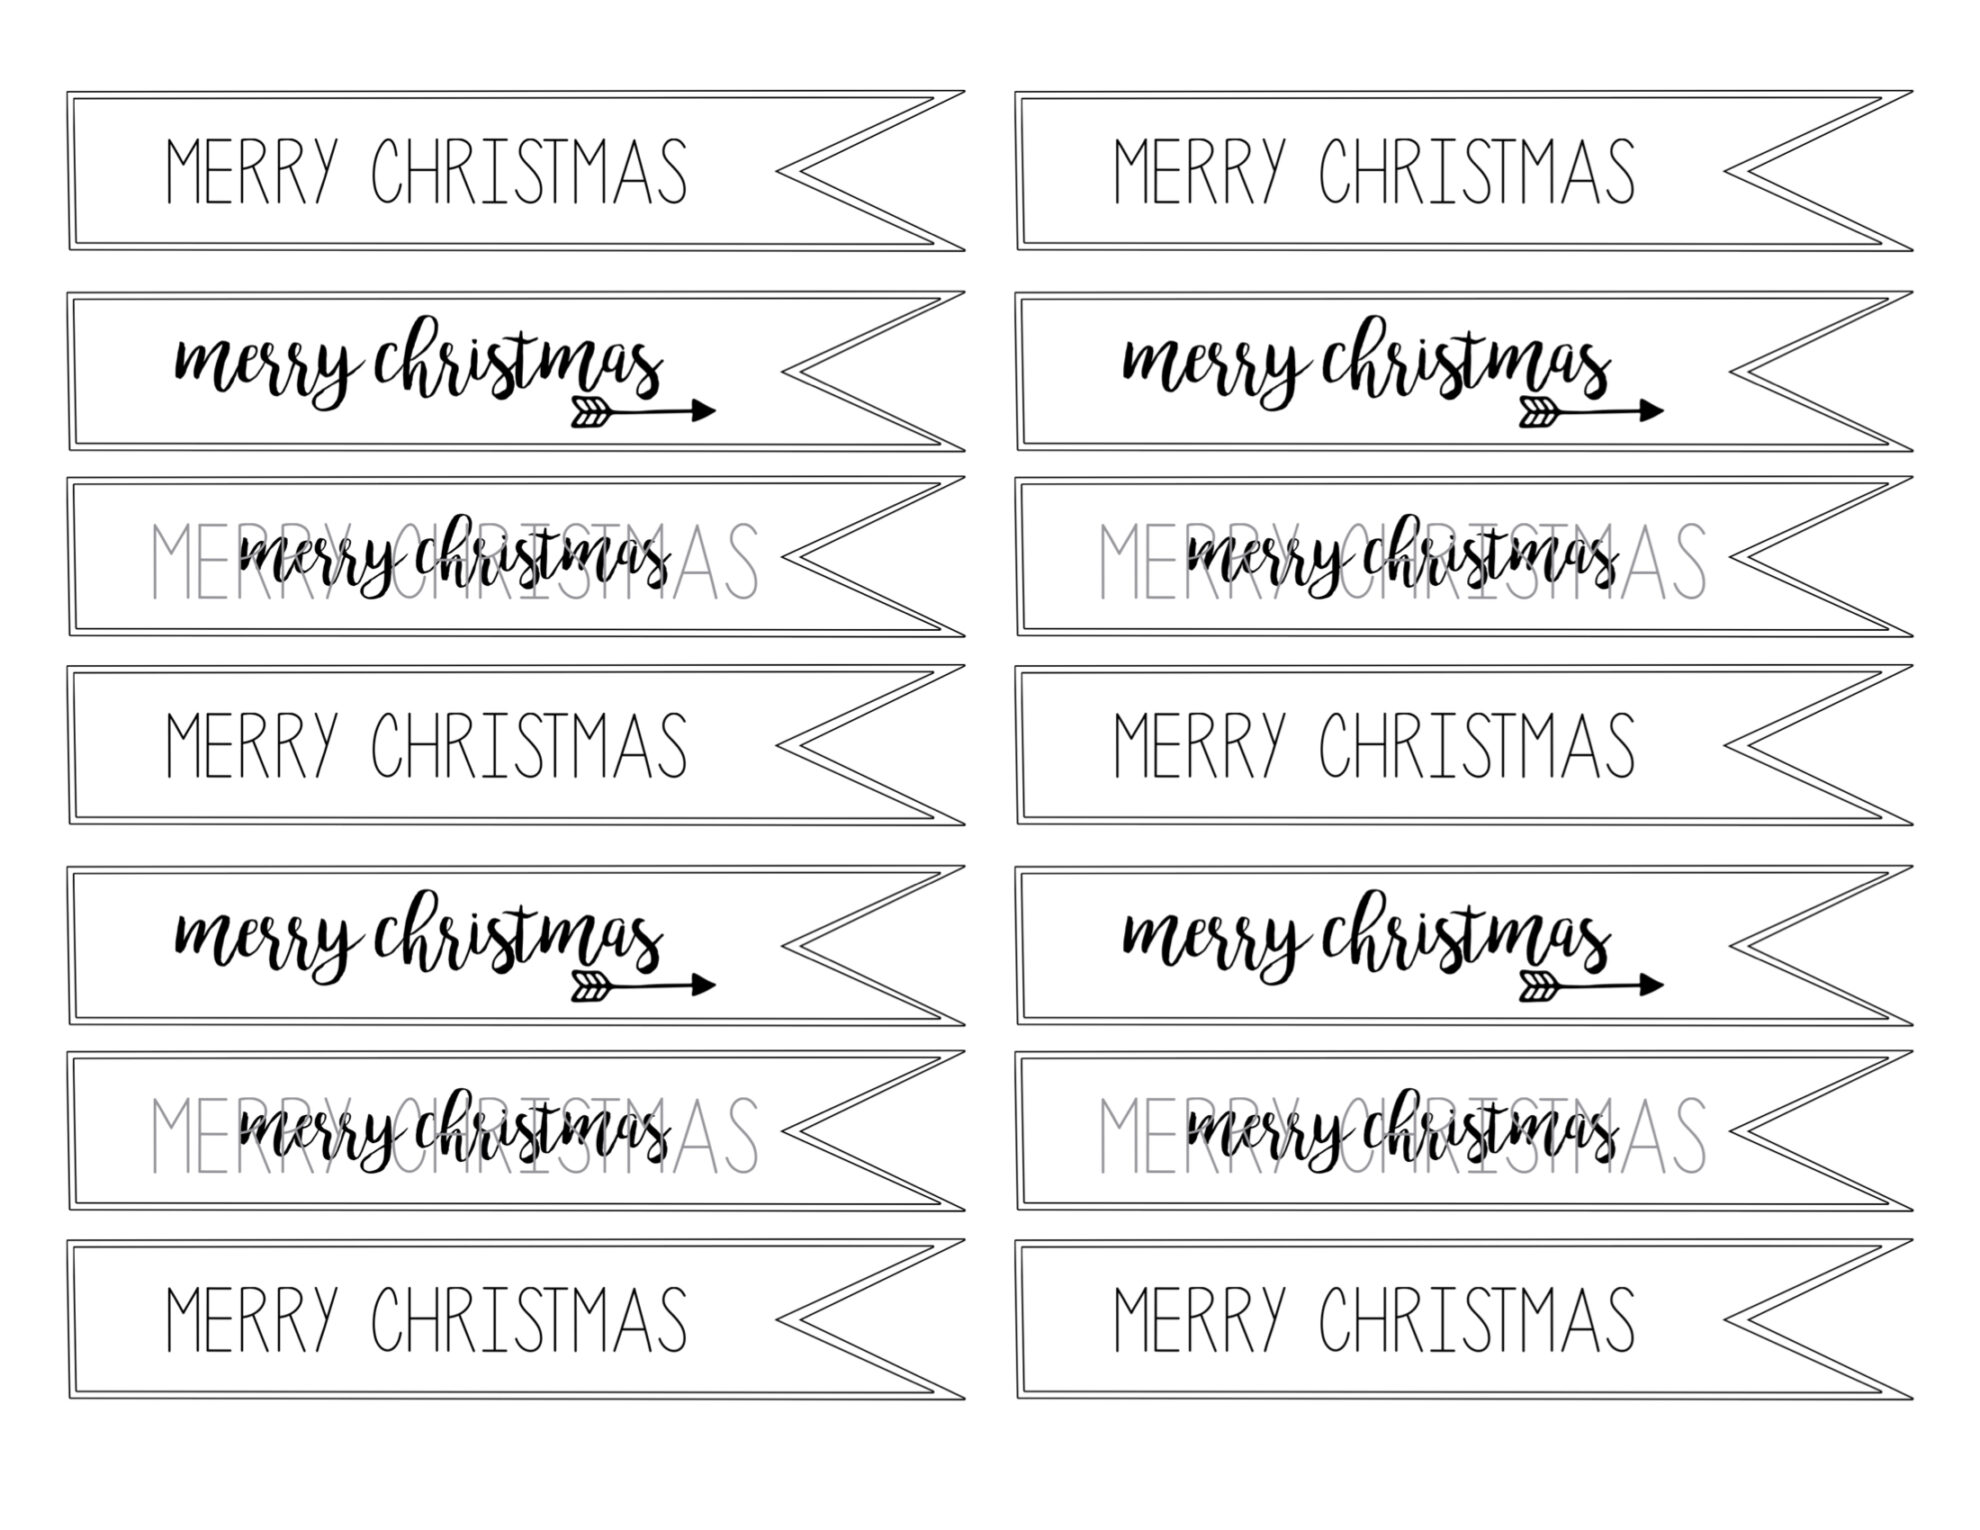 Selective image pertaining to merry christmas tags free printable